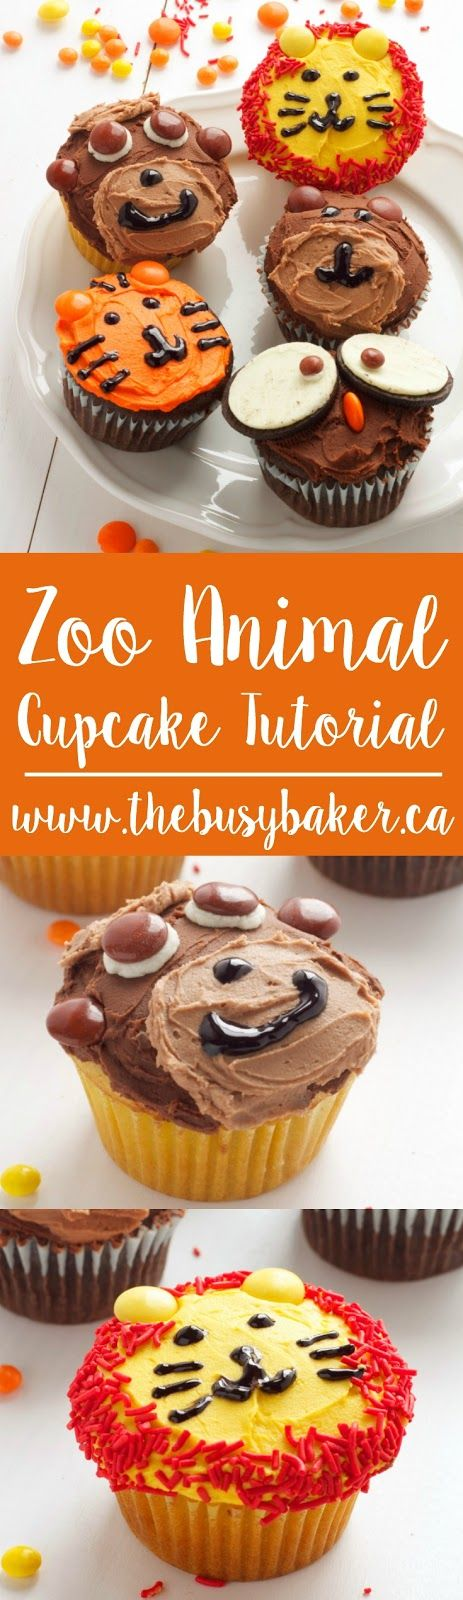 Zoo Animal Cupcakes Tutorial - the perfect cupcakes for a zoo or jungle-themed birthday party! For the recipe and video tutorial visit www.thebusybaker.ca